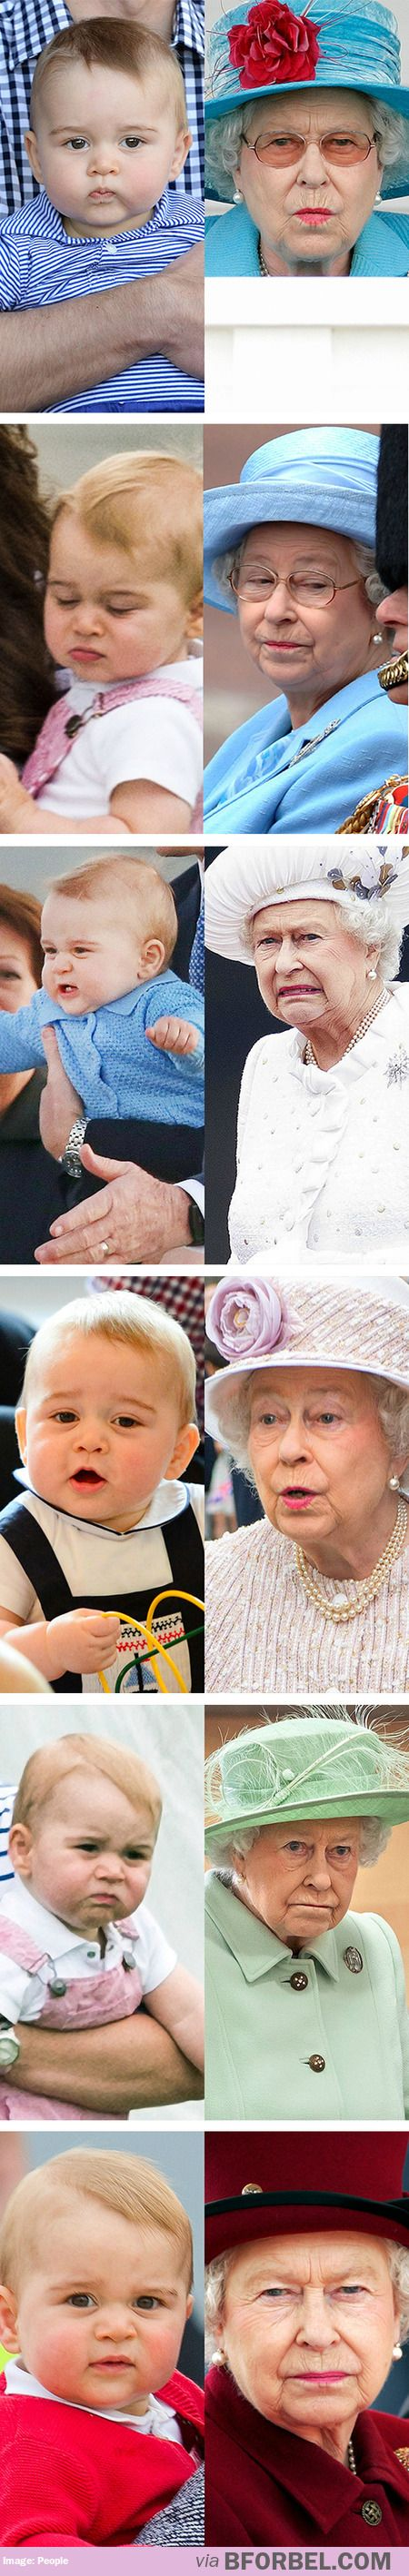 Prince George vs. Queen Elizabeth ~ he has some of the same expressions - lol